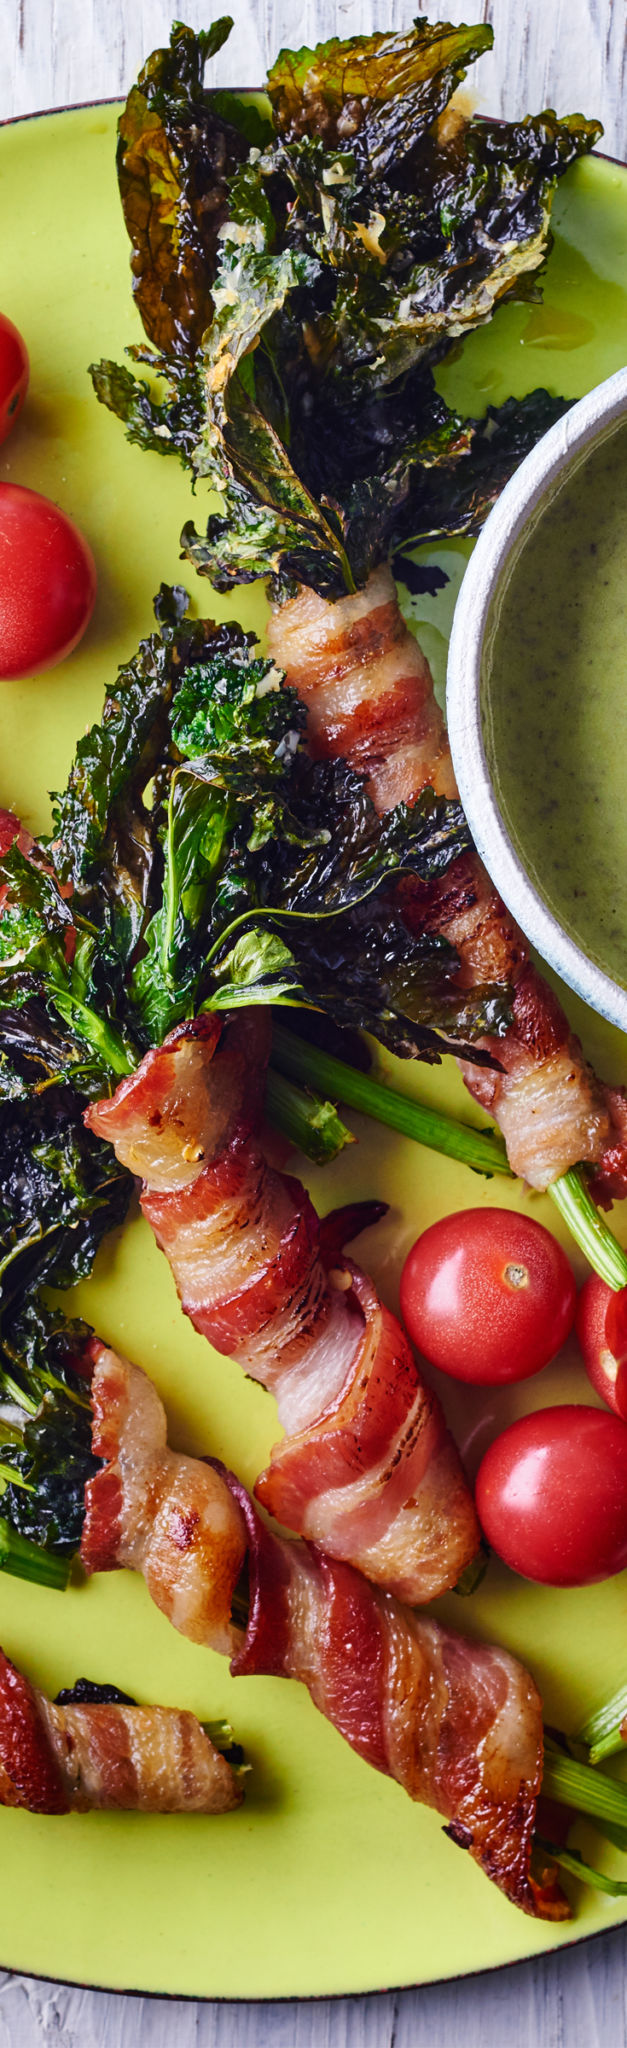 Bacon Wrapped Broccoli Rabe